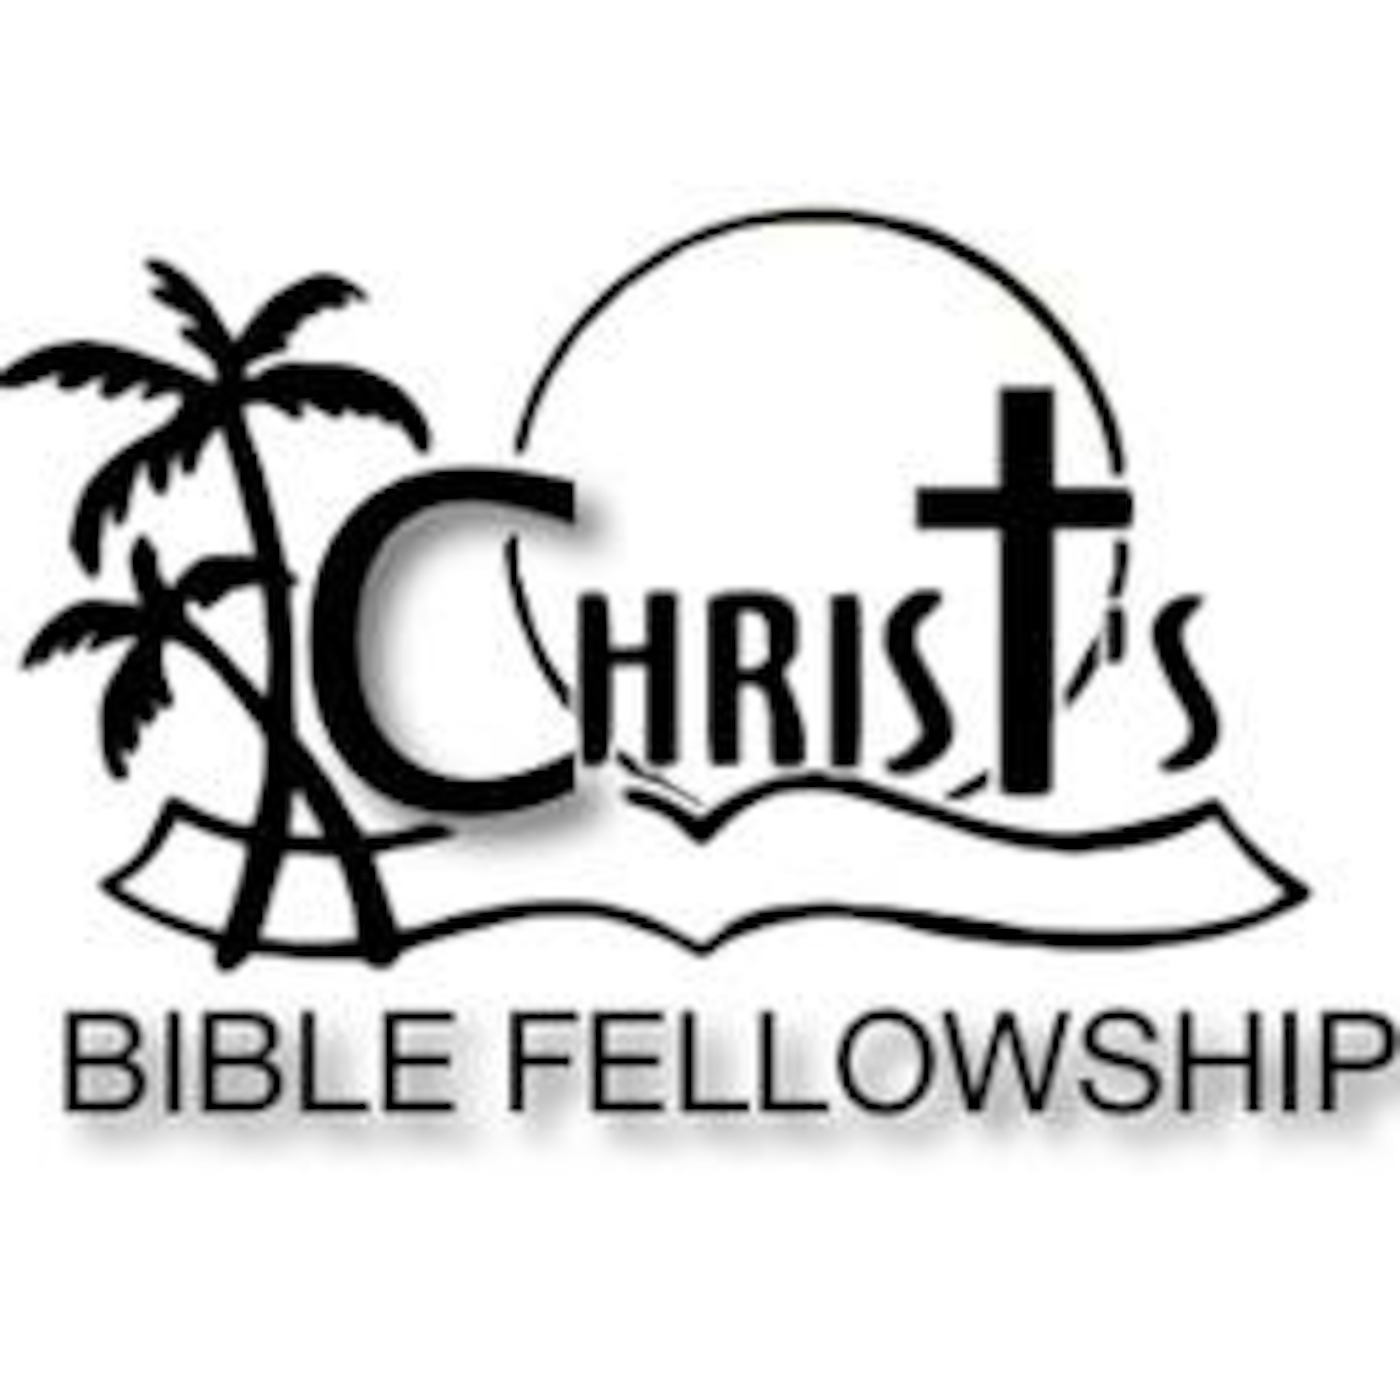 Christ's Bible Fellowship Guam